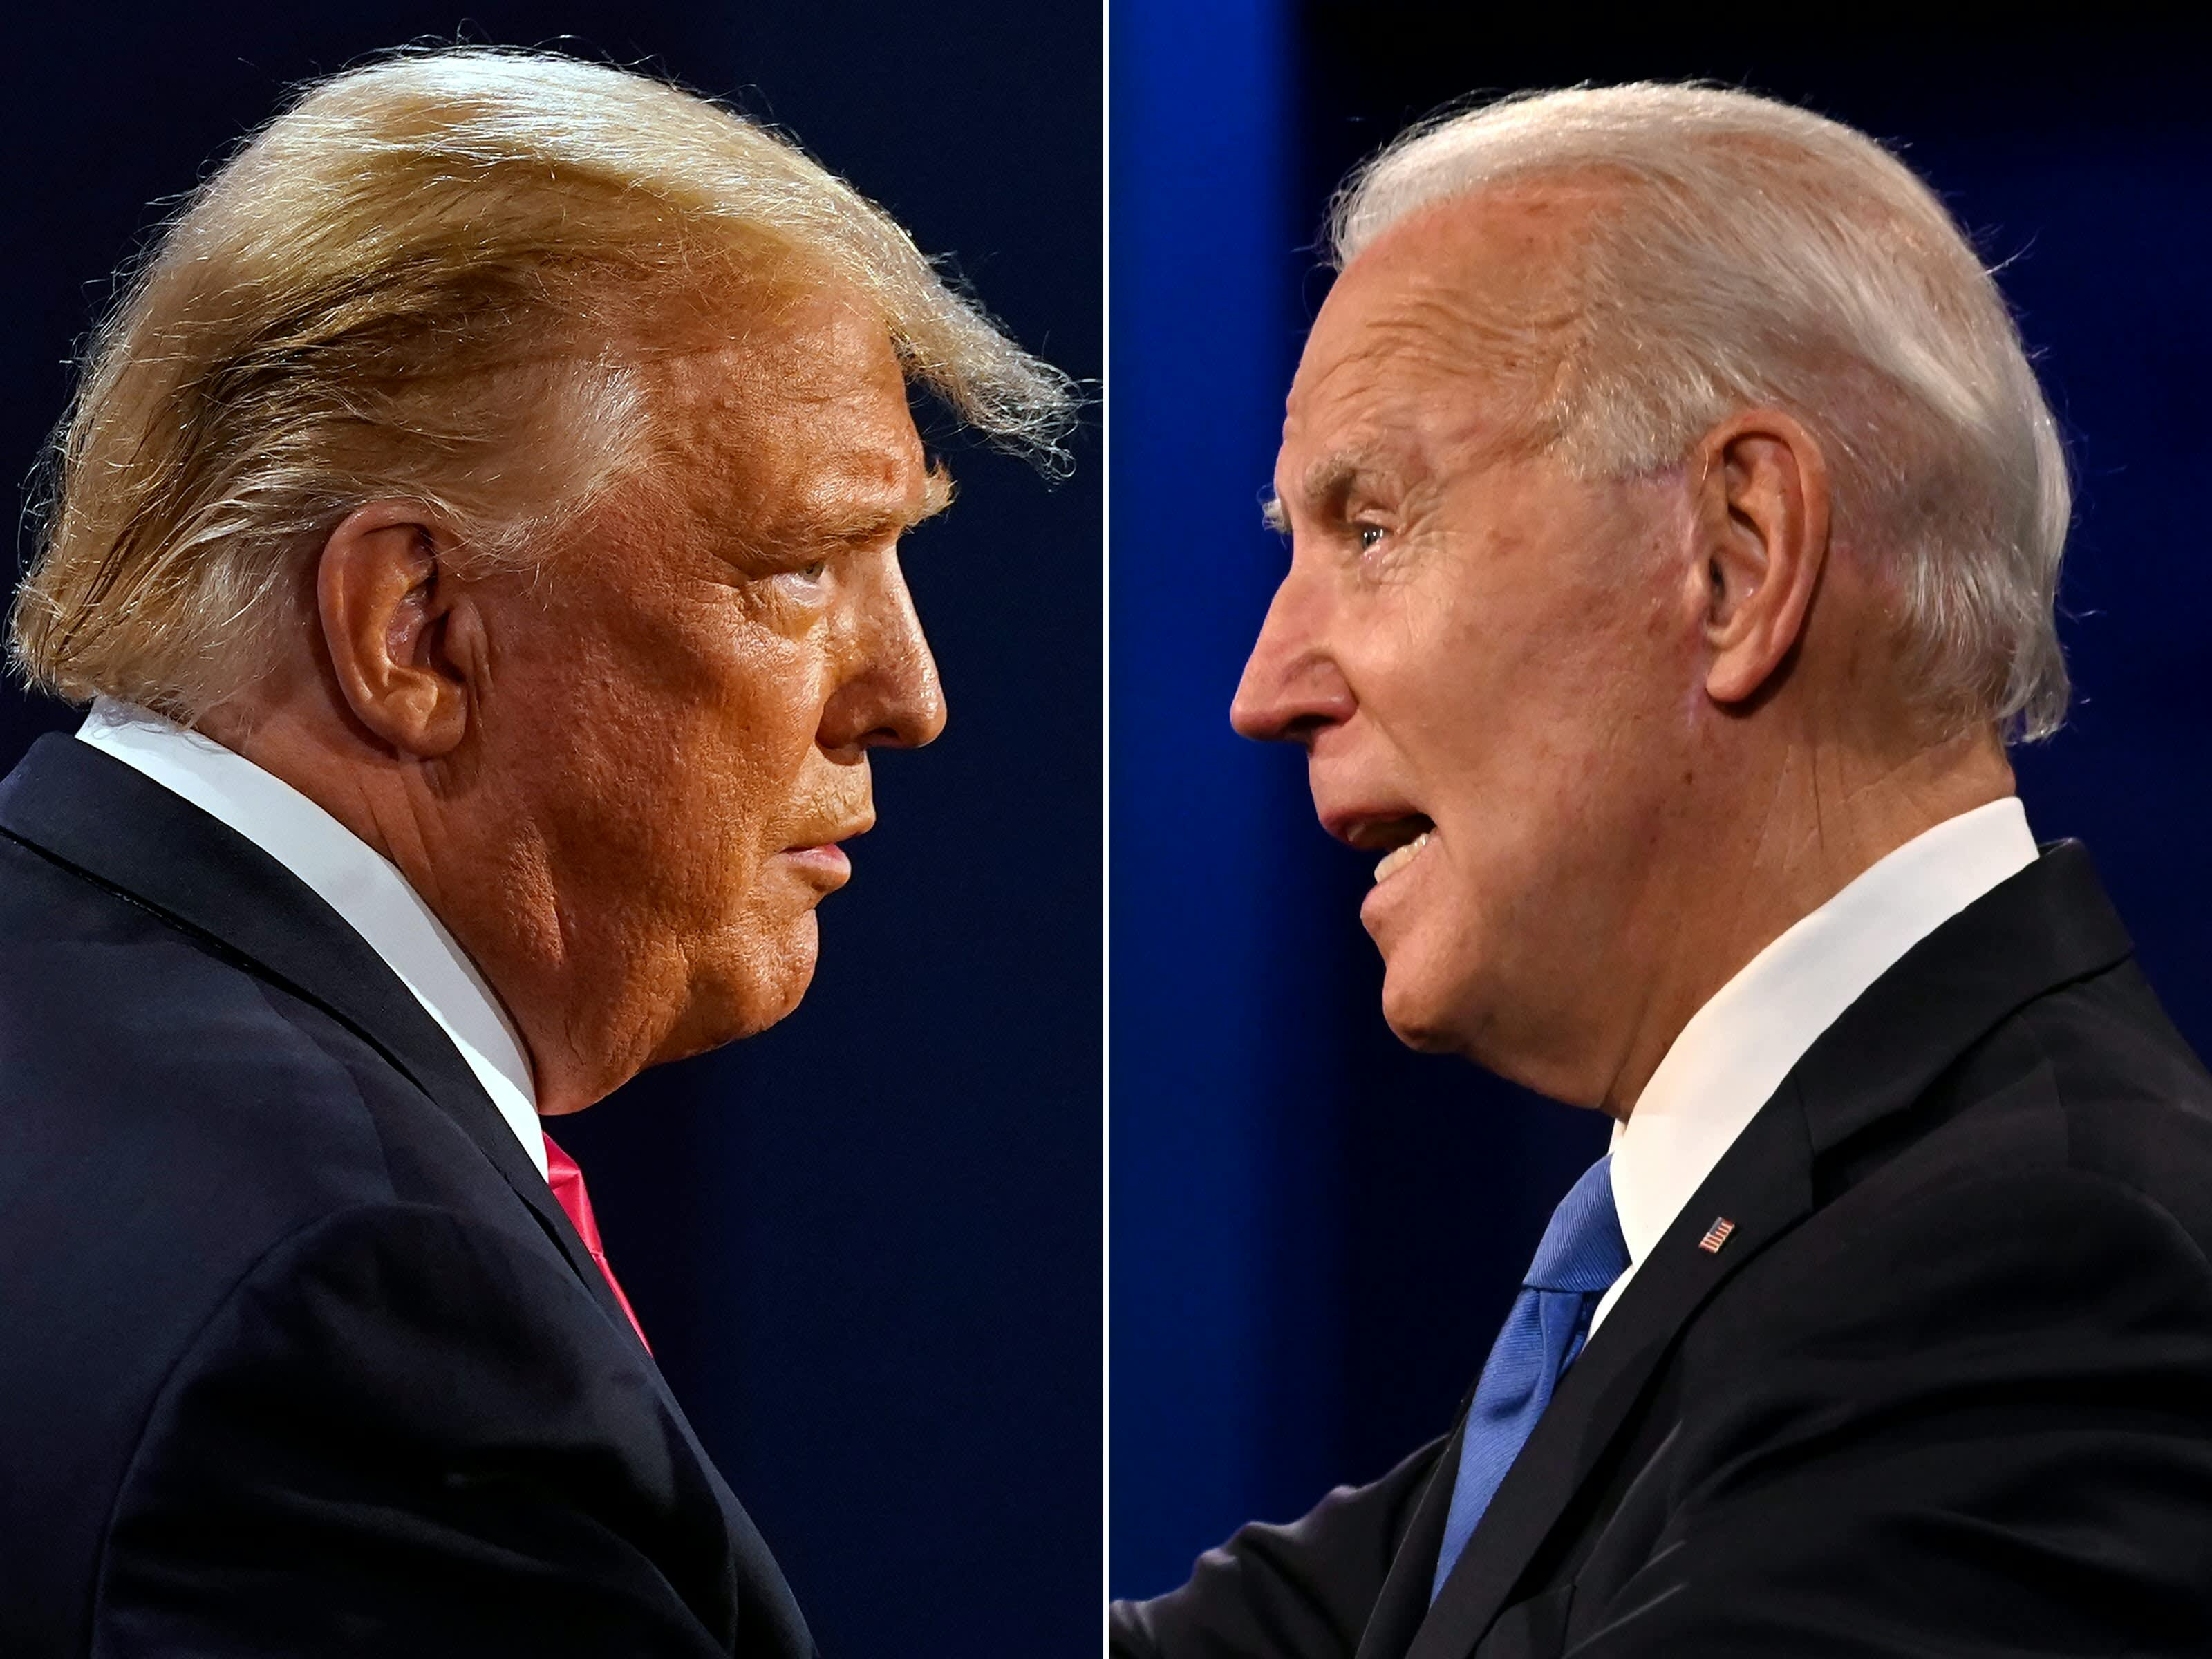 Final Presidential Debate 2020 Trump Vs Biden Highlights